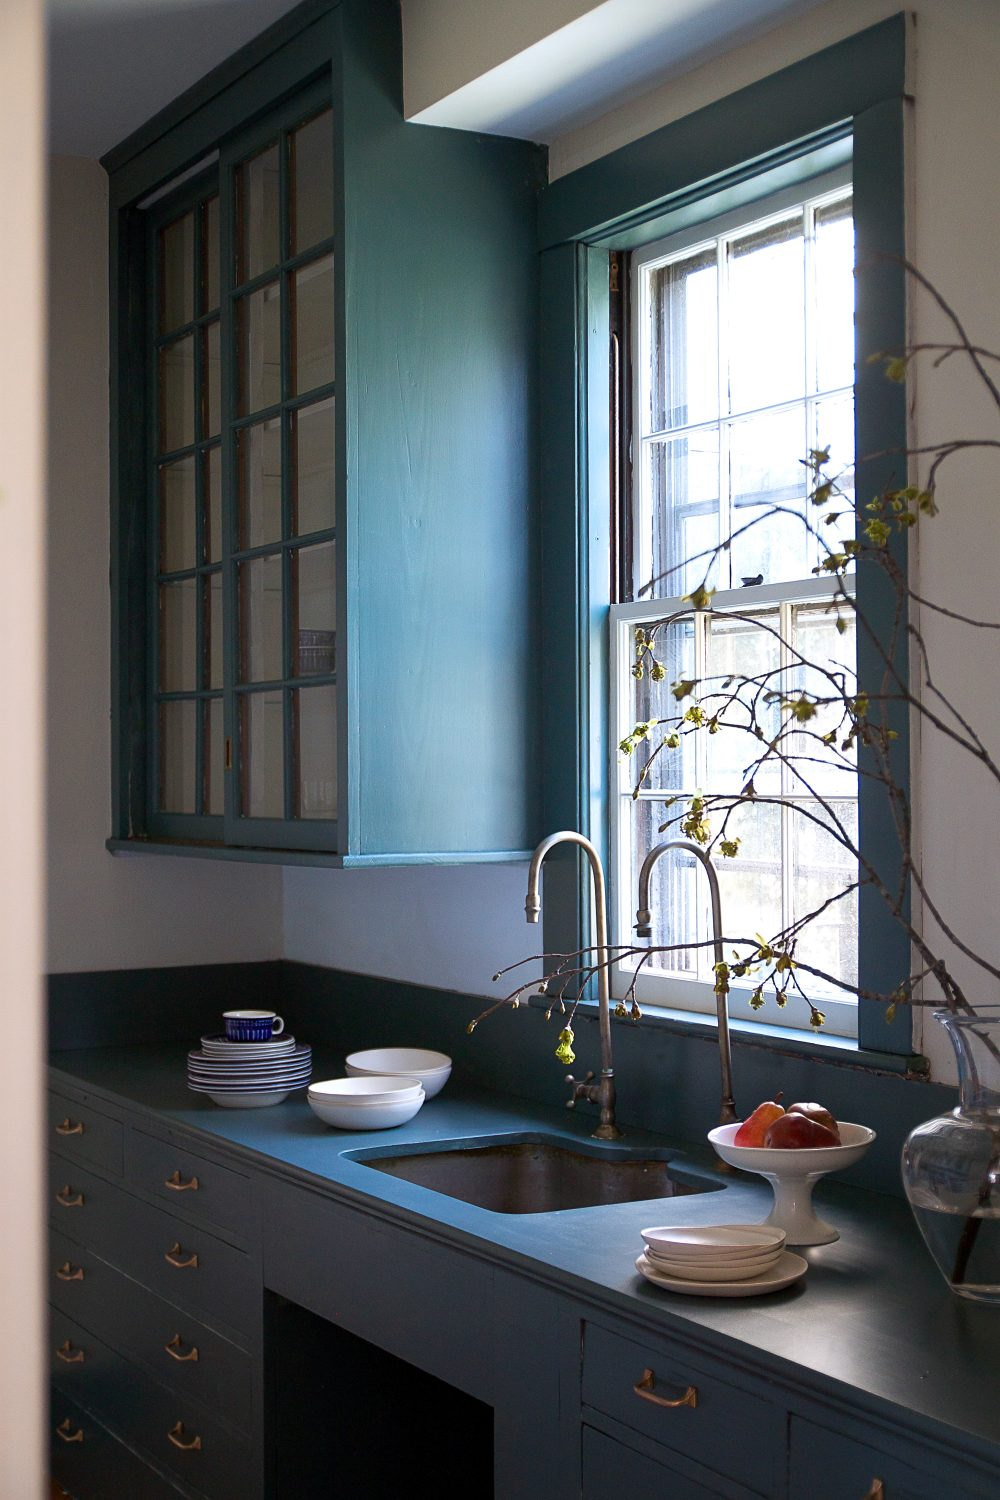 Justine Hand painted a butler's pantry, including counter, in Inchyra Blue.